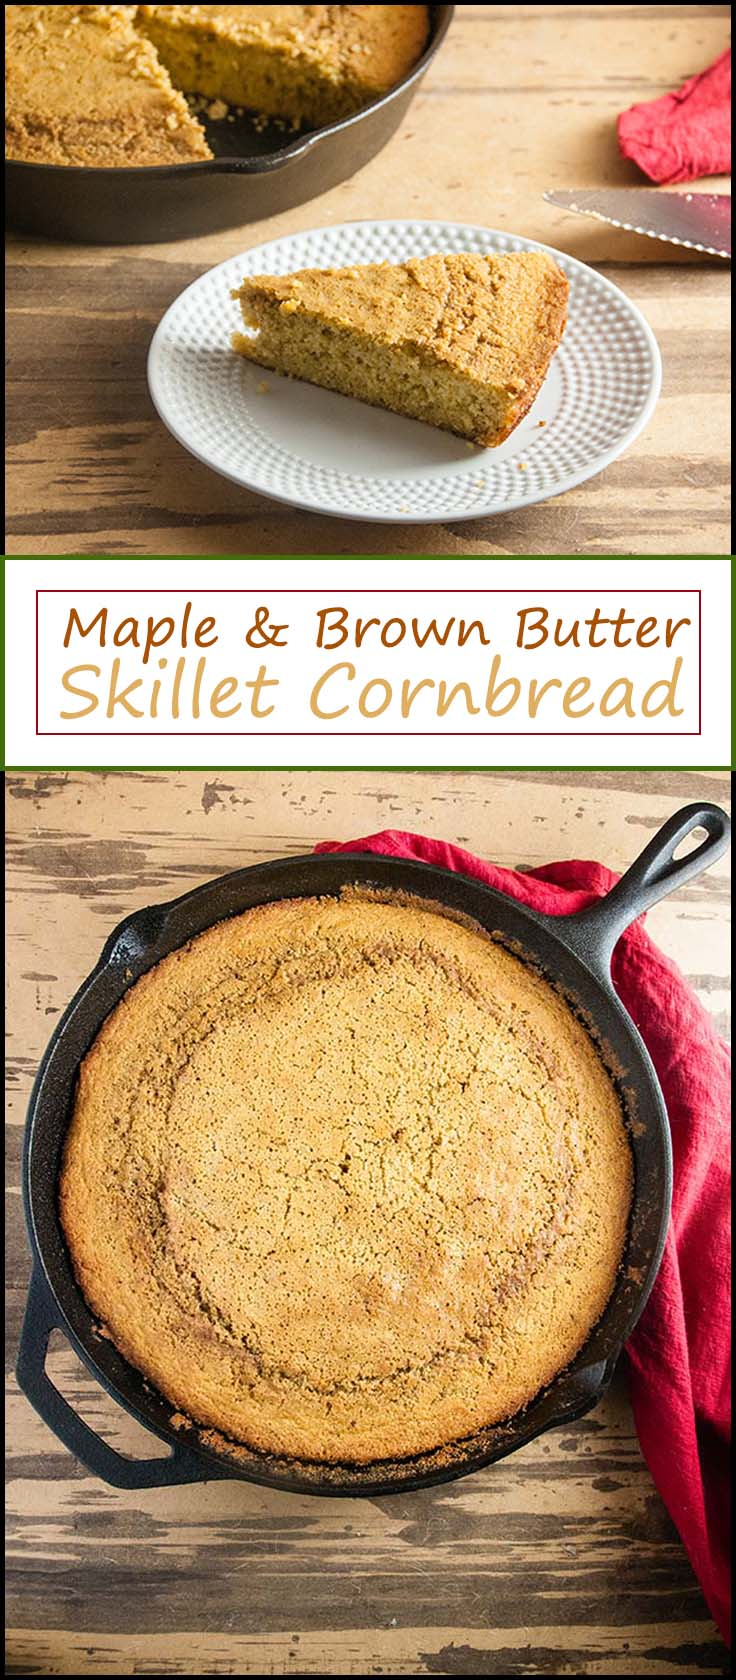 Easy Maple Brown Butter Skillet Cornbread from www.seasonedsprinkles.com